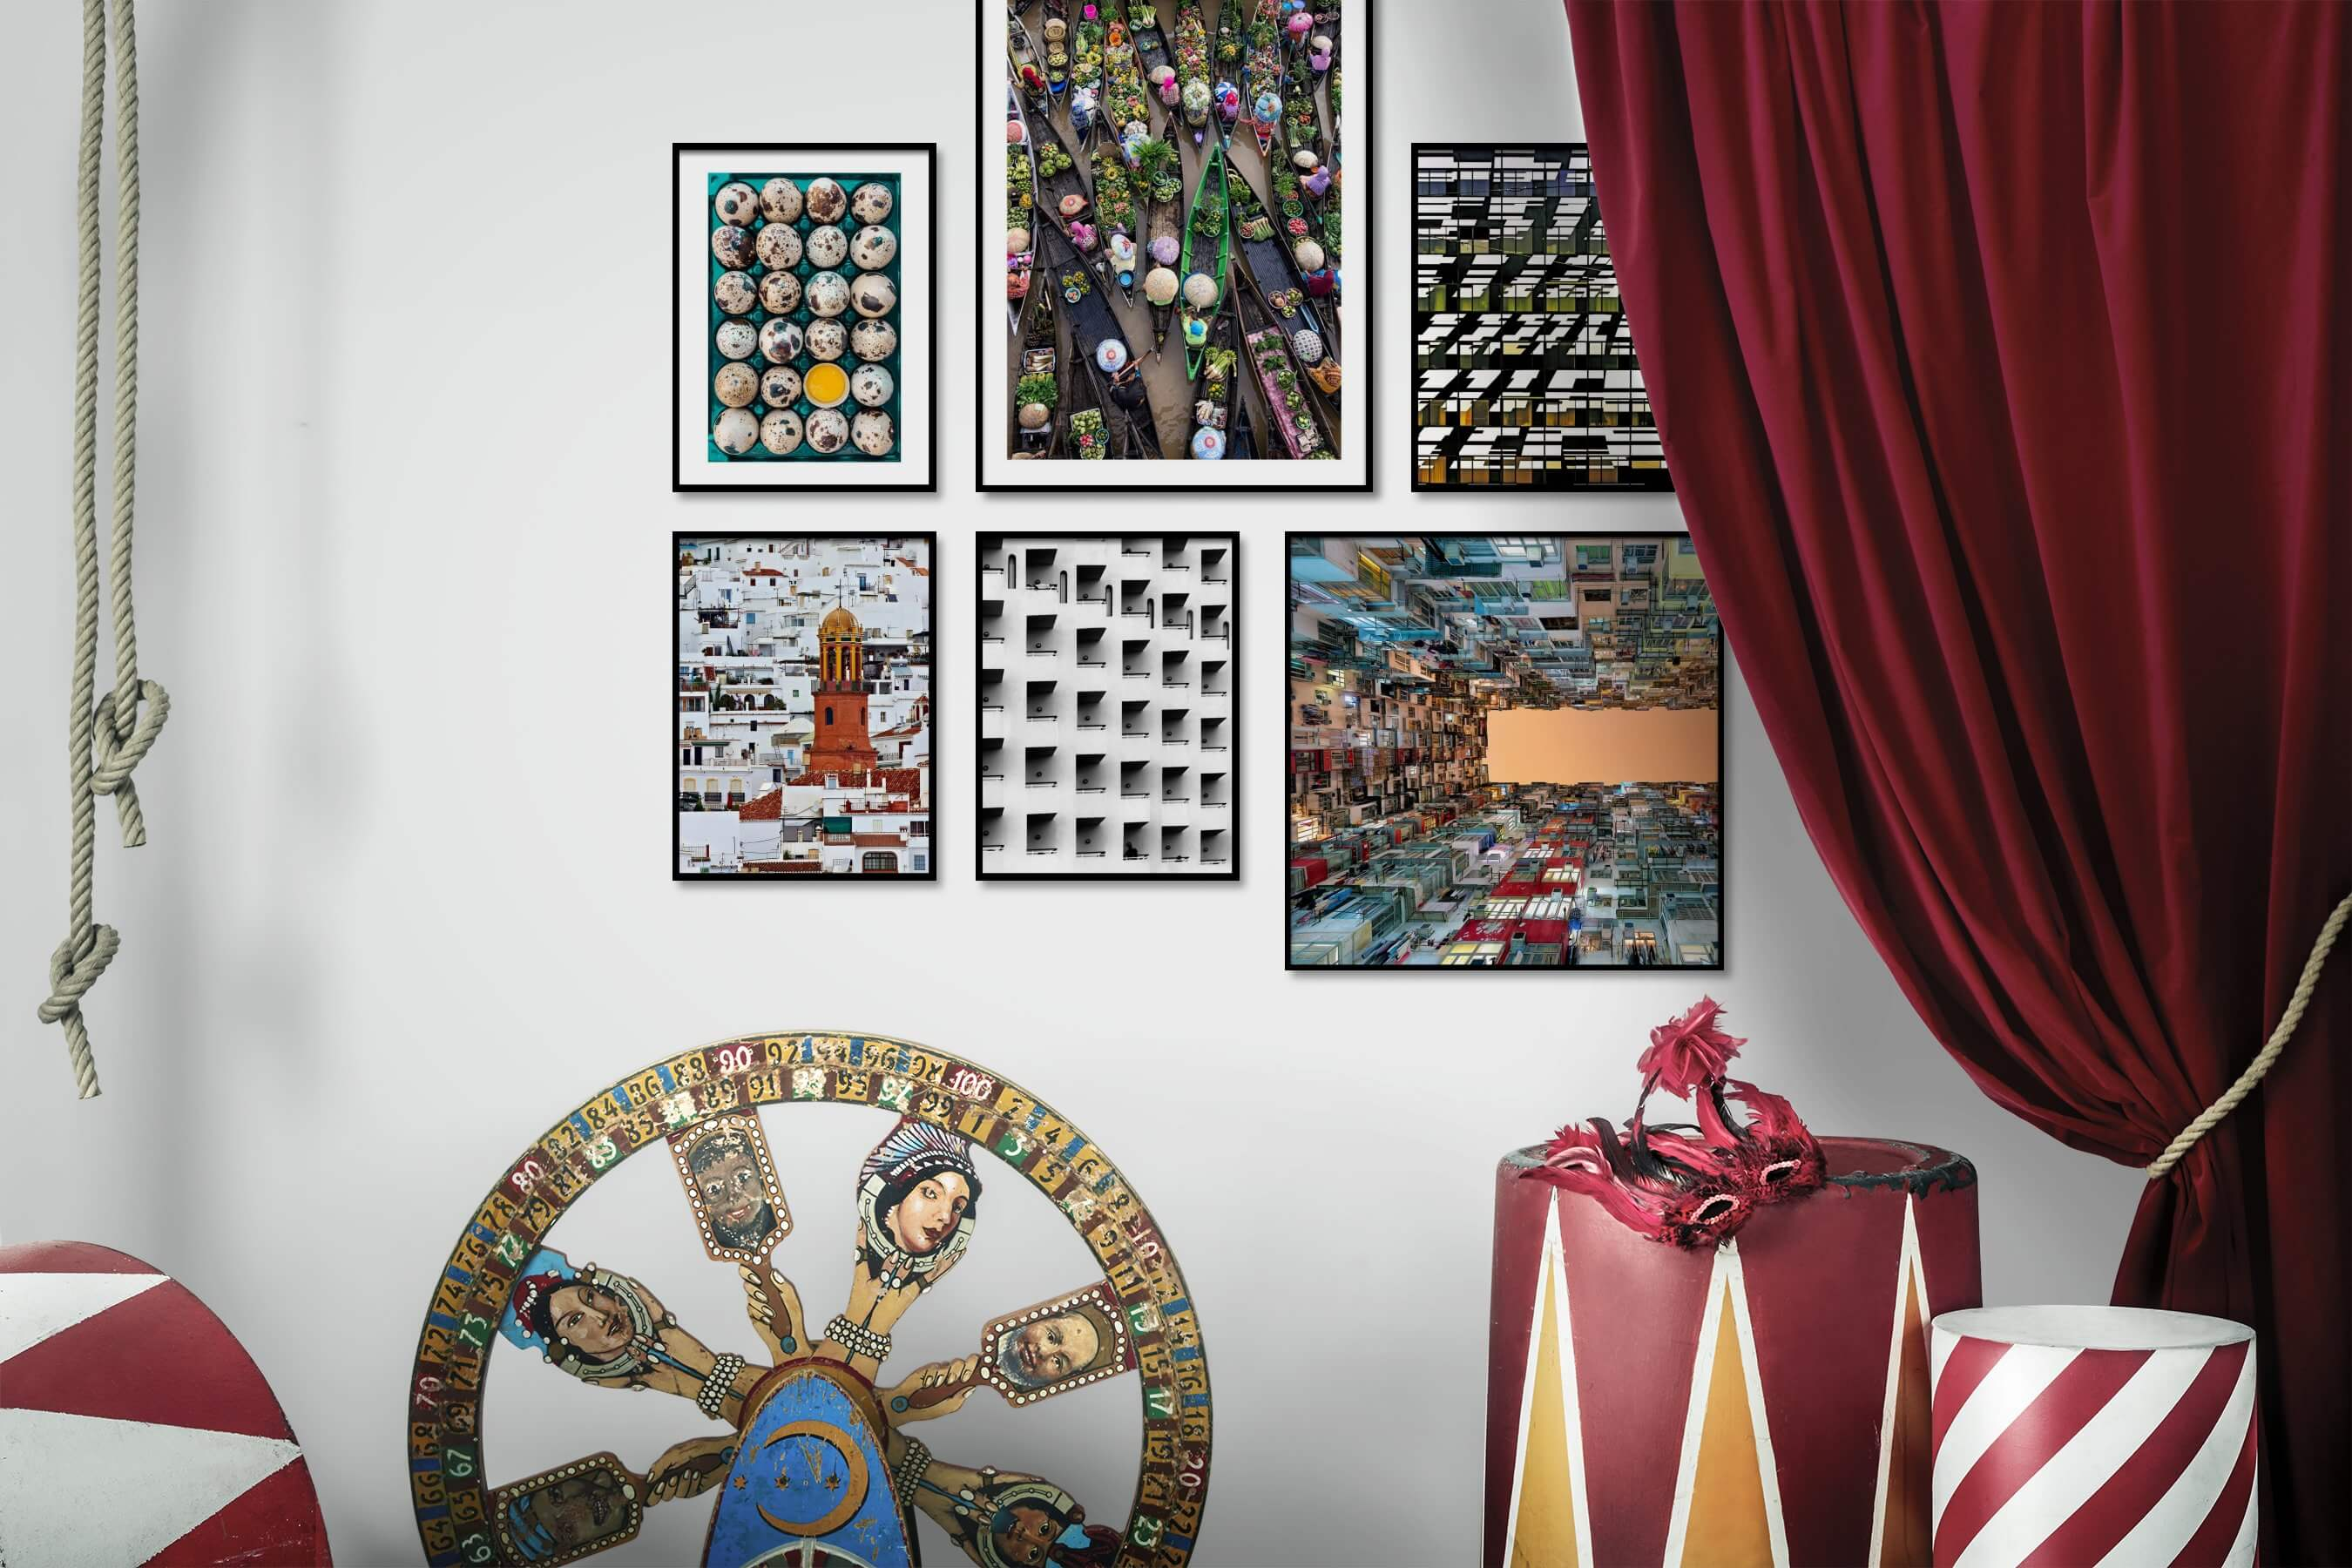 Gallery wall idea with six framed pictures arranged on a wall depicting For the Maximalist, City Life, and Black & White